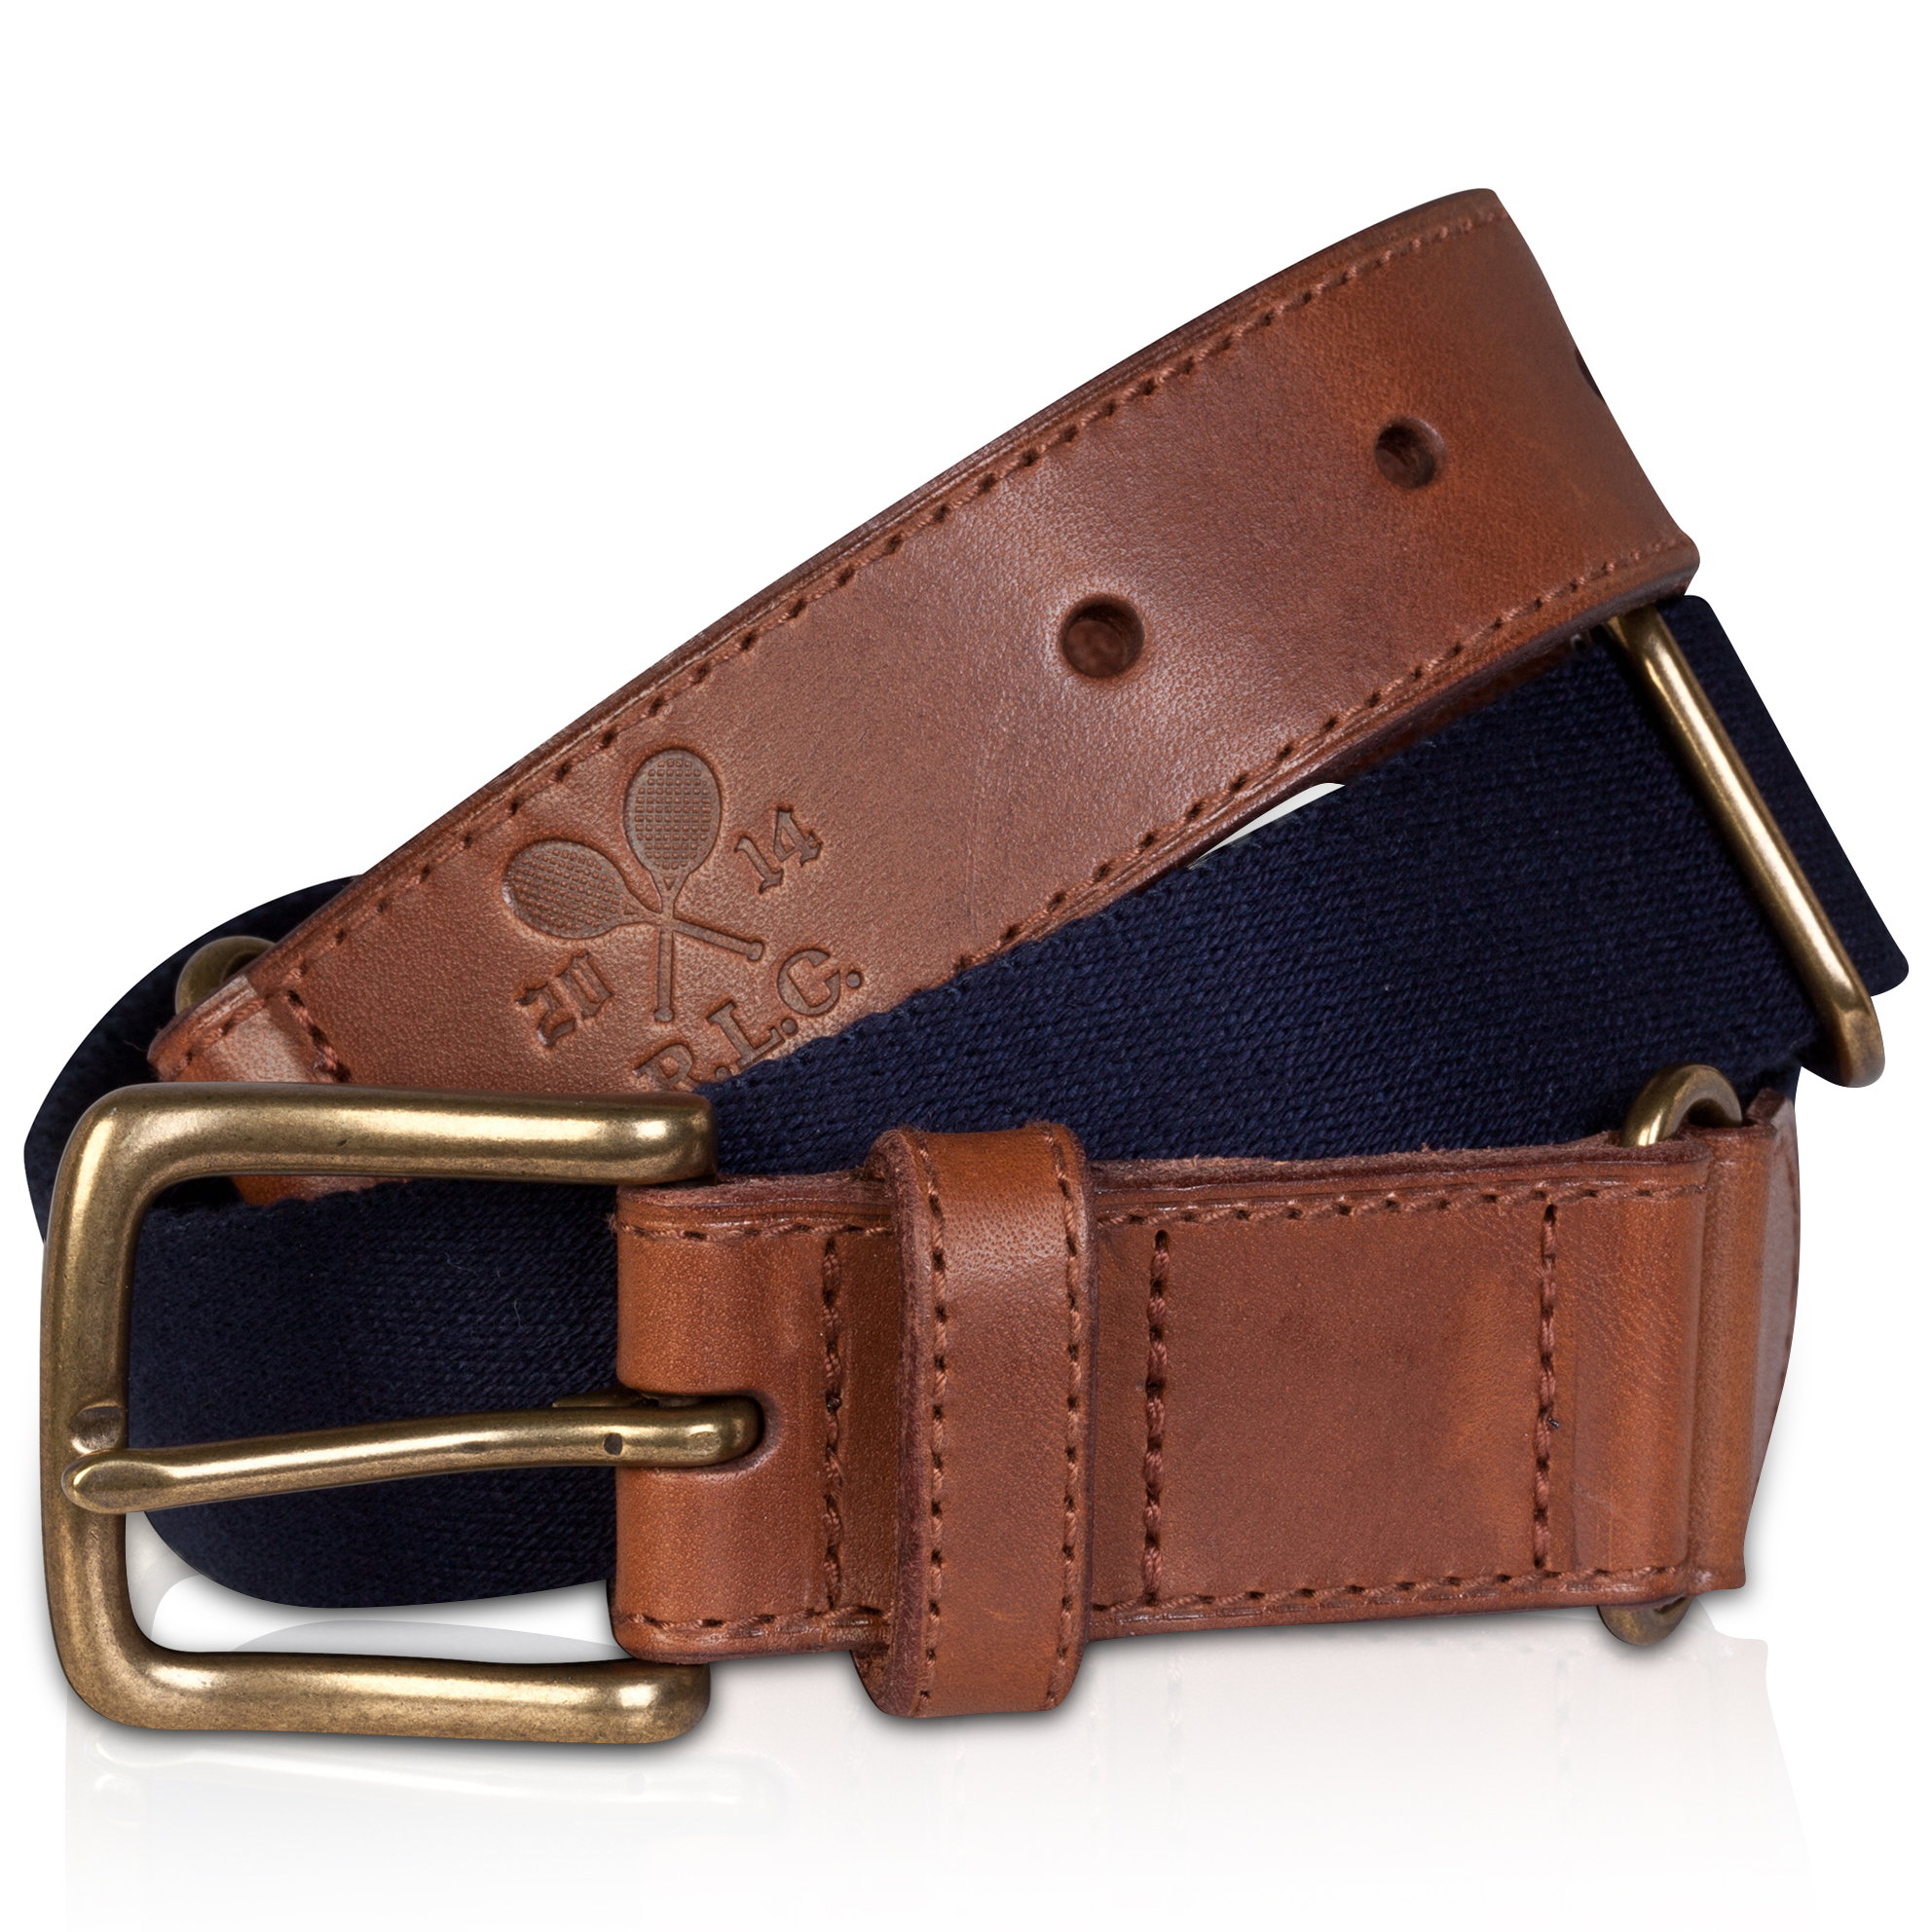 Wimbledon Polo Ralph Lauren Icon Belt - Aviator Navy